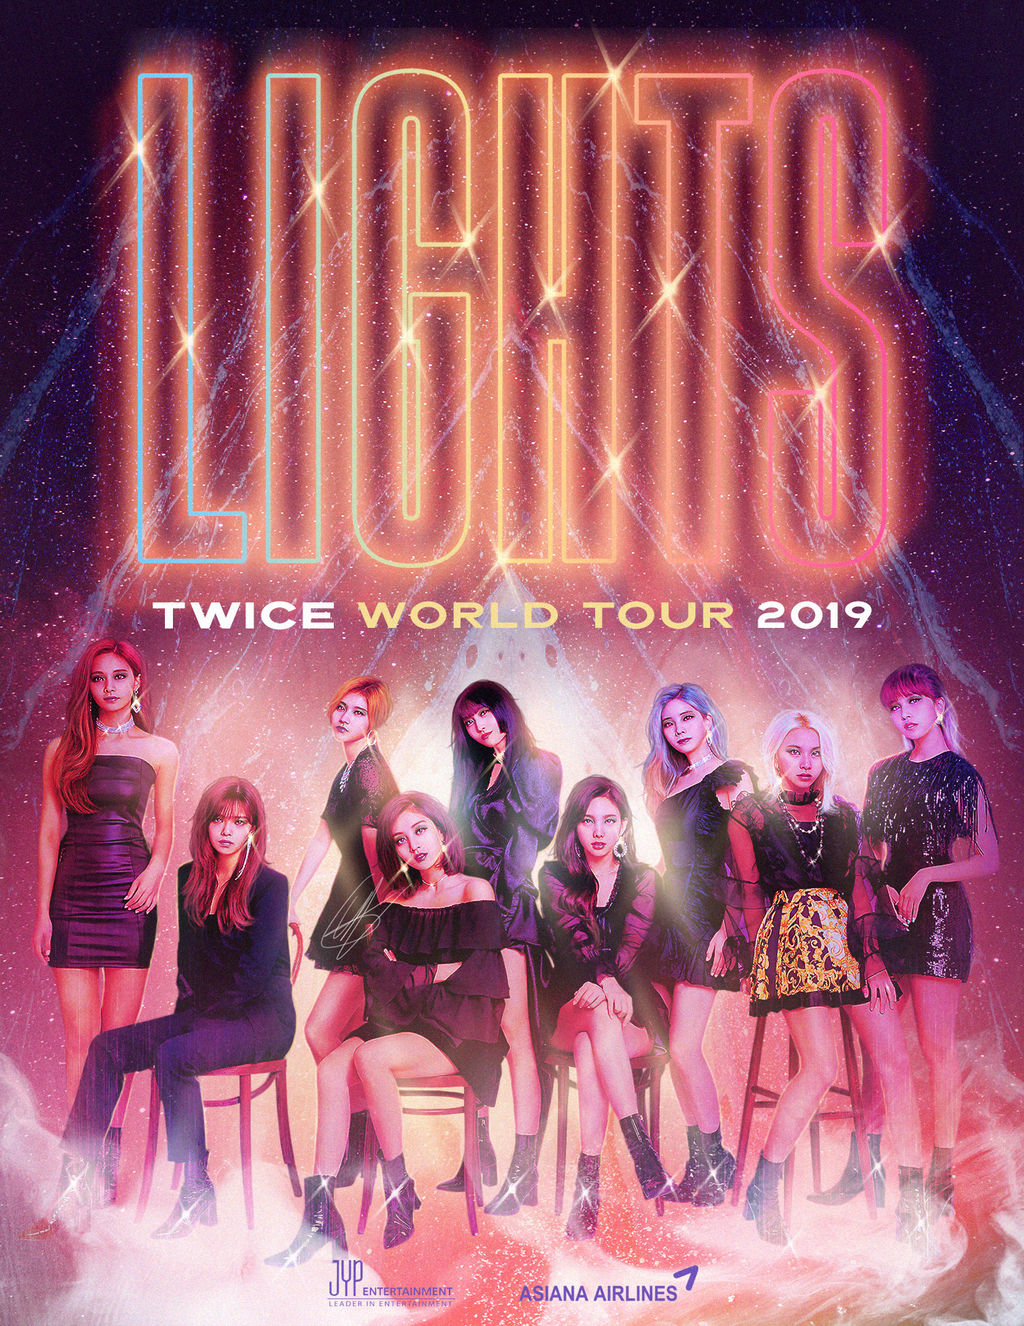 Twice Lights World Tour 2019 By Goldendesigncover On Deviantart